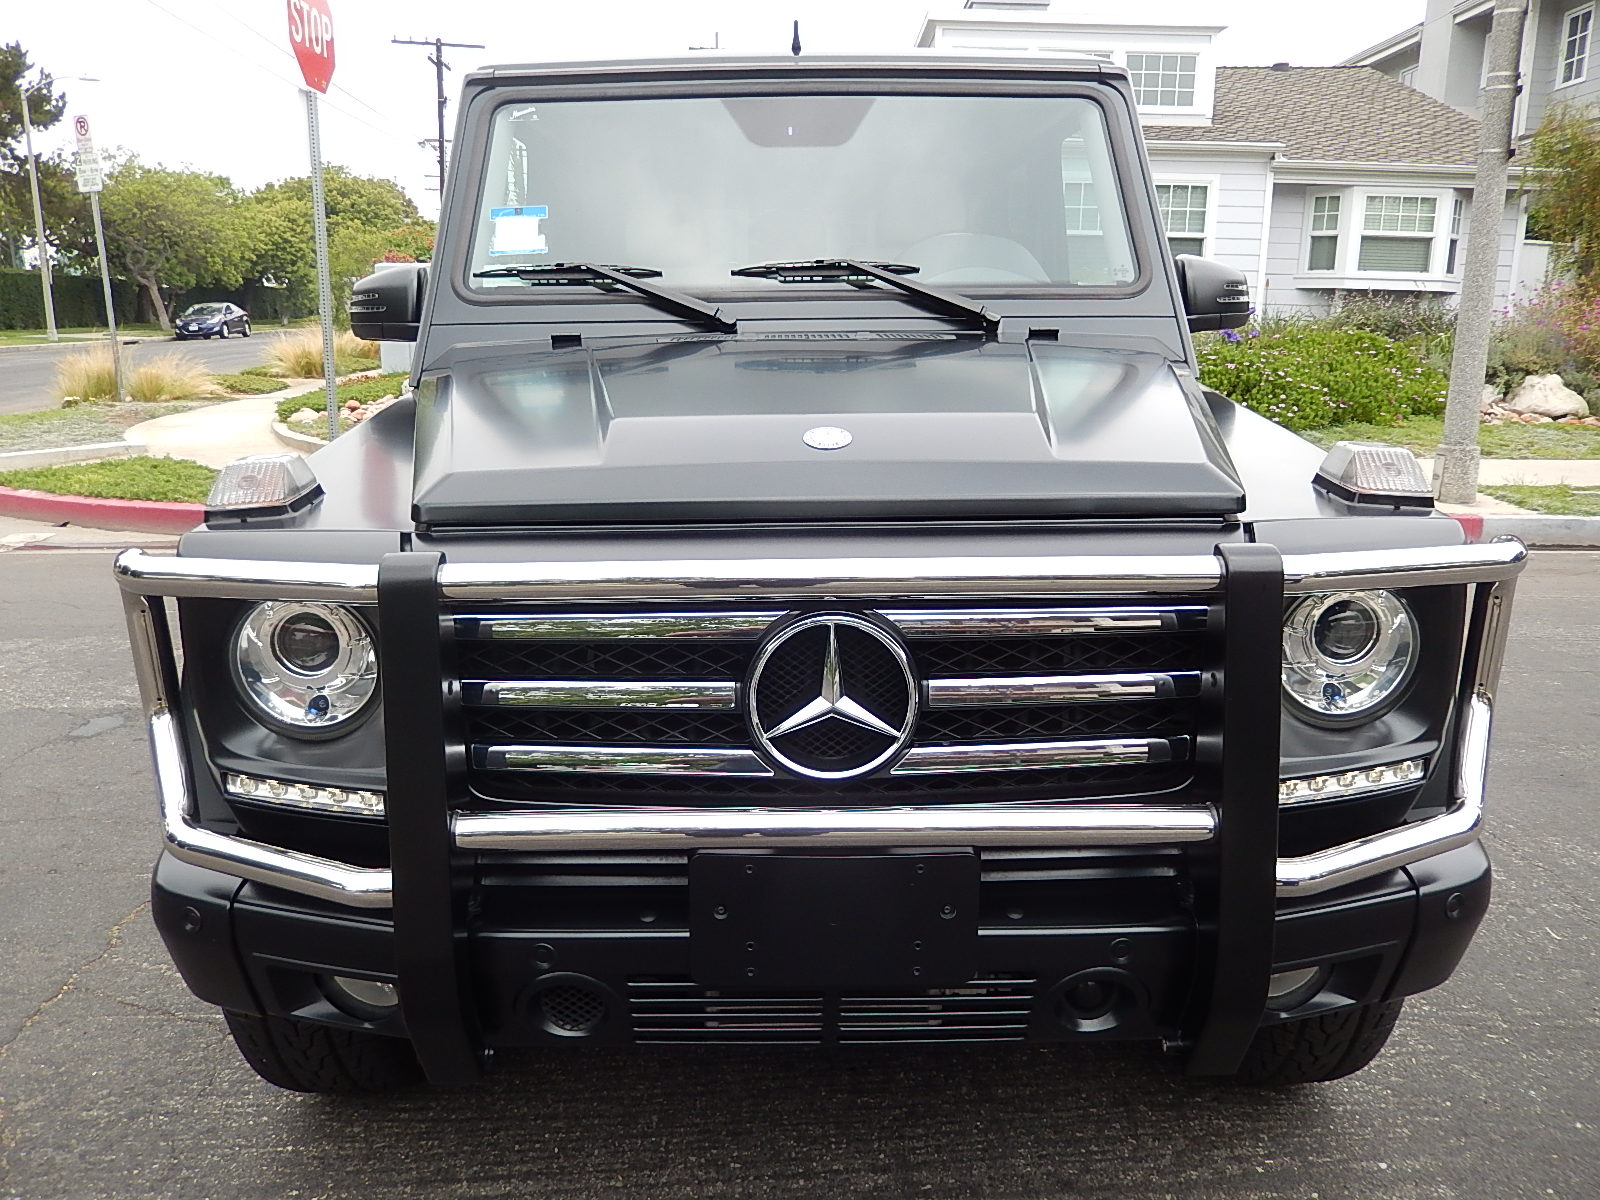 Mercedes benz g550 rental in los angeles for Mercedes benz for rent